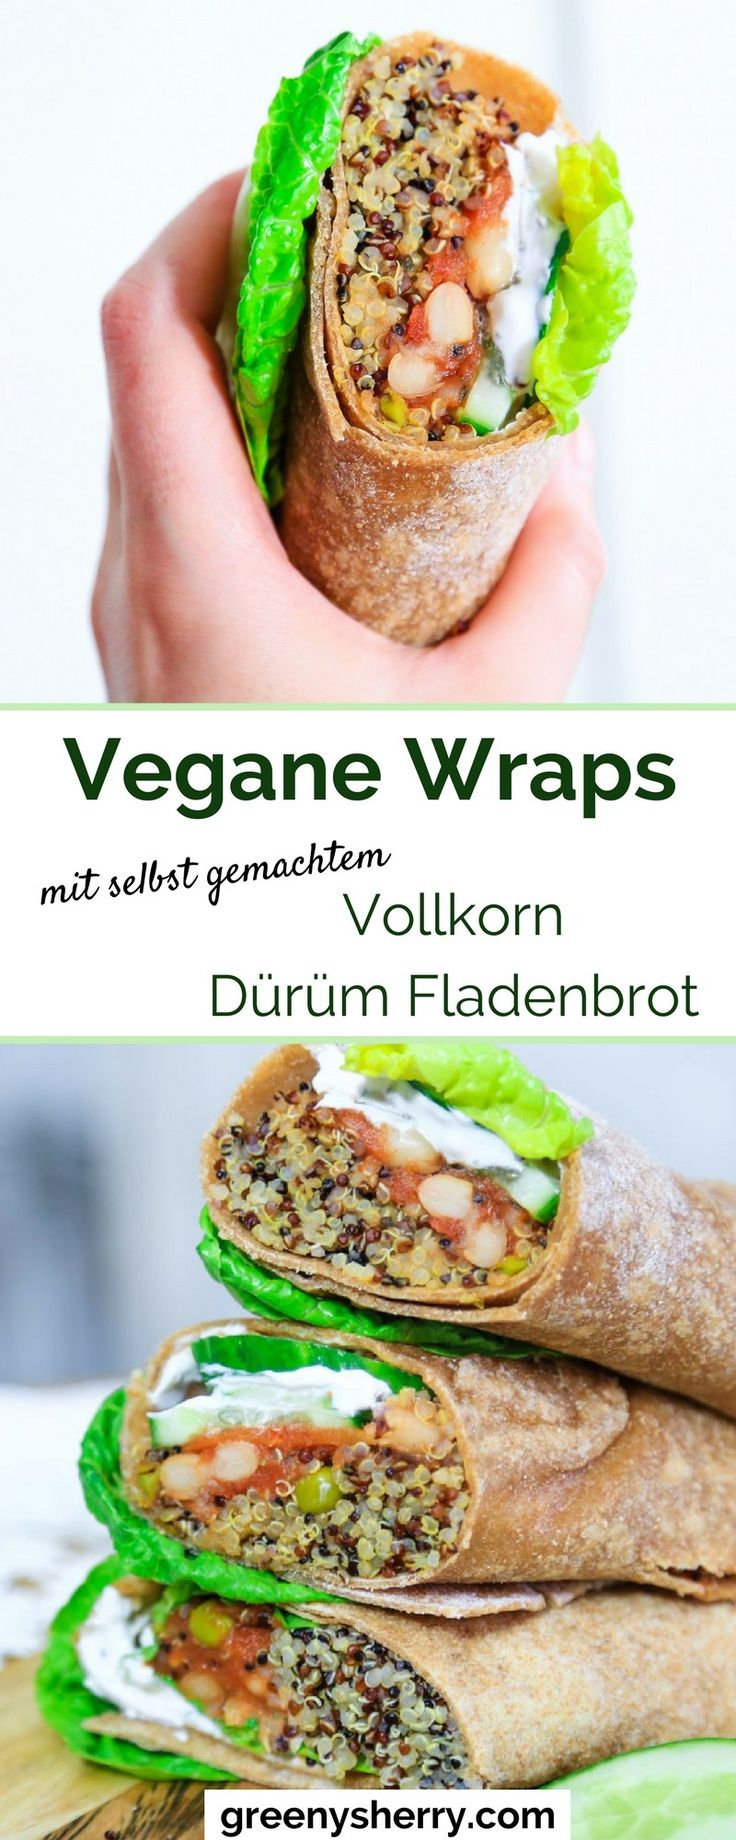 vollkorn d r m fladenbrot f r vegane wraps rezept vegane wraps diy rezepte und vollkorn. Black Bedroom Furniture Sets. Home Design Ideas